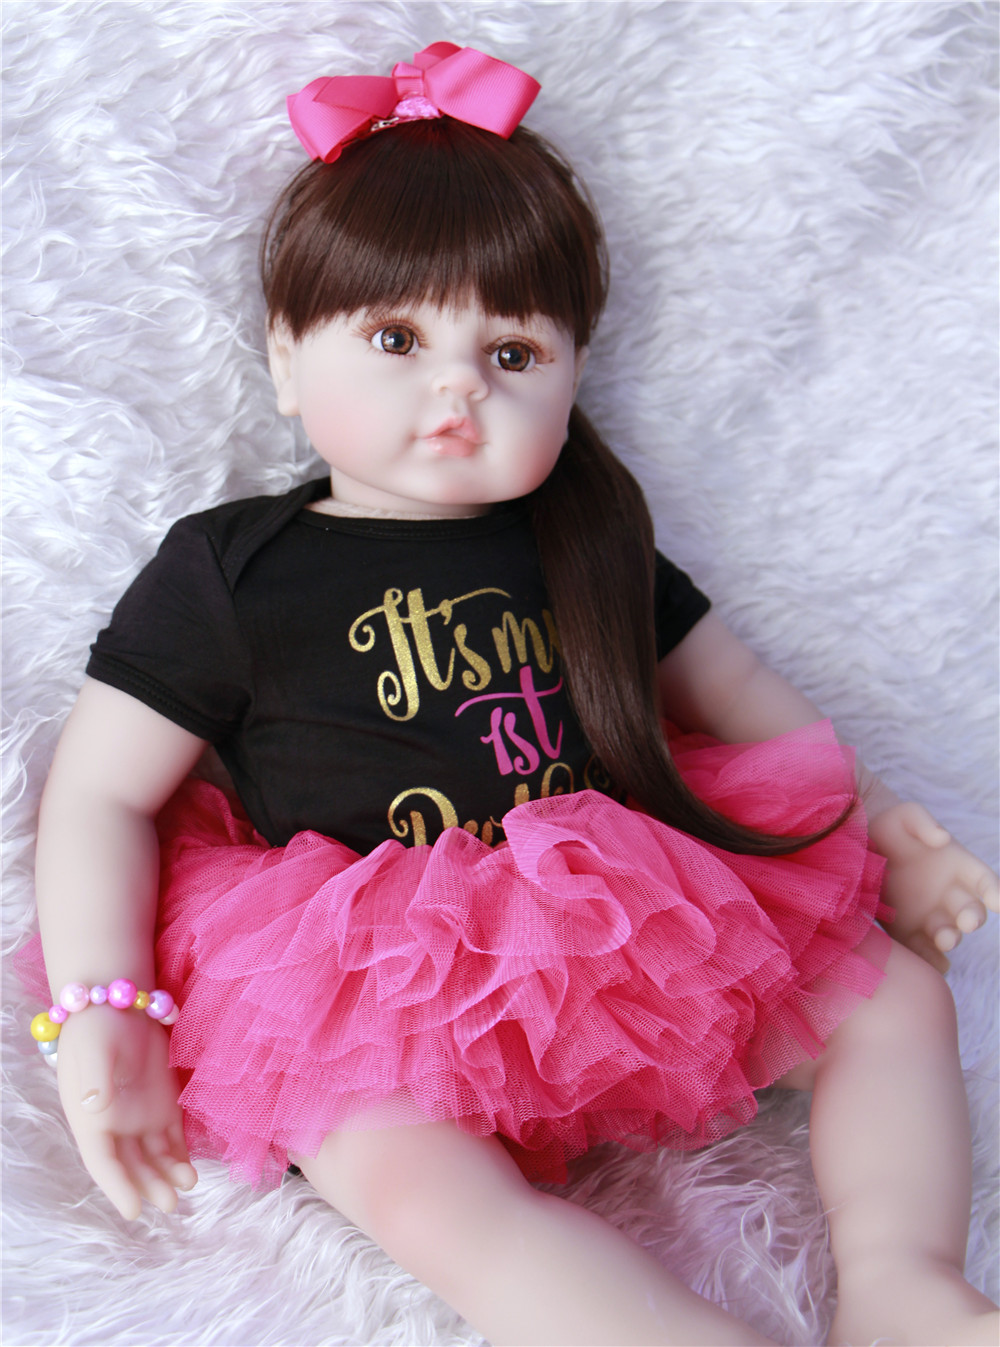 58cm High-end vinyl silicone reborn baby doll toy newborn girl babies princess doll birthday holiday gift bedtime play house toy58cm High-end vinyl silicone reborn baby doll toy newborn girl babies princess doll birthday holiday gift bedtime play house toy